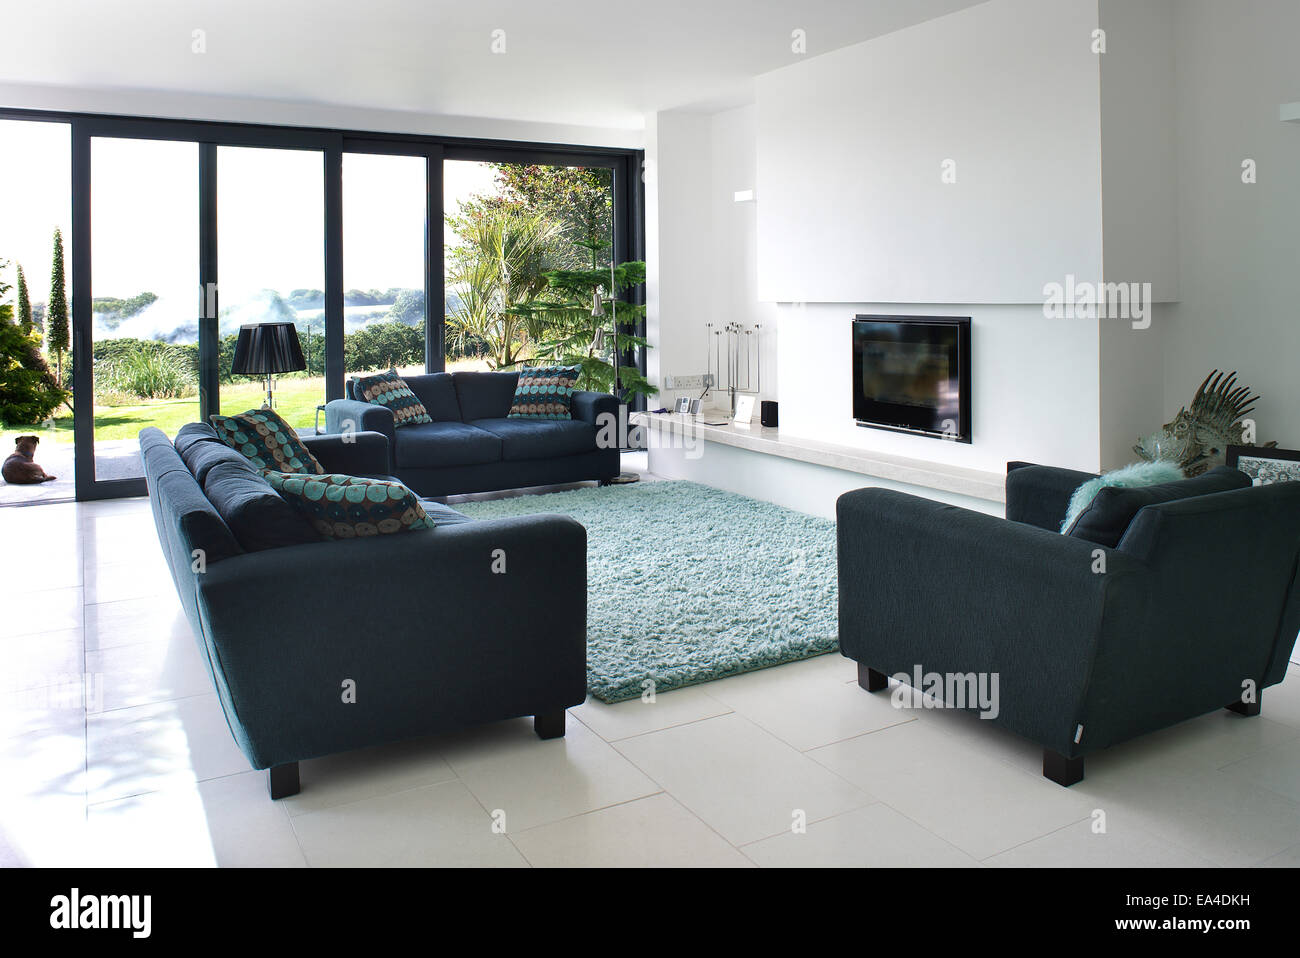 Uk Living Room Open Plan Living Room With View Through Patio Doors In Residential